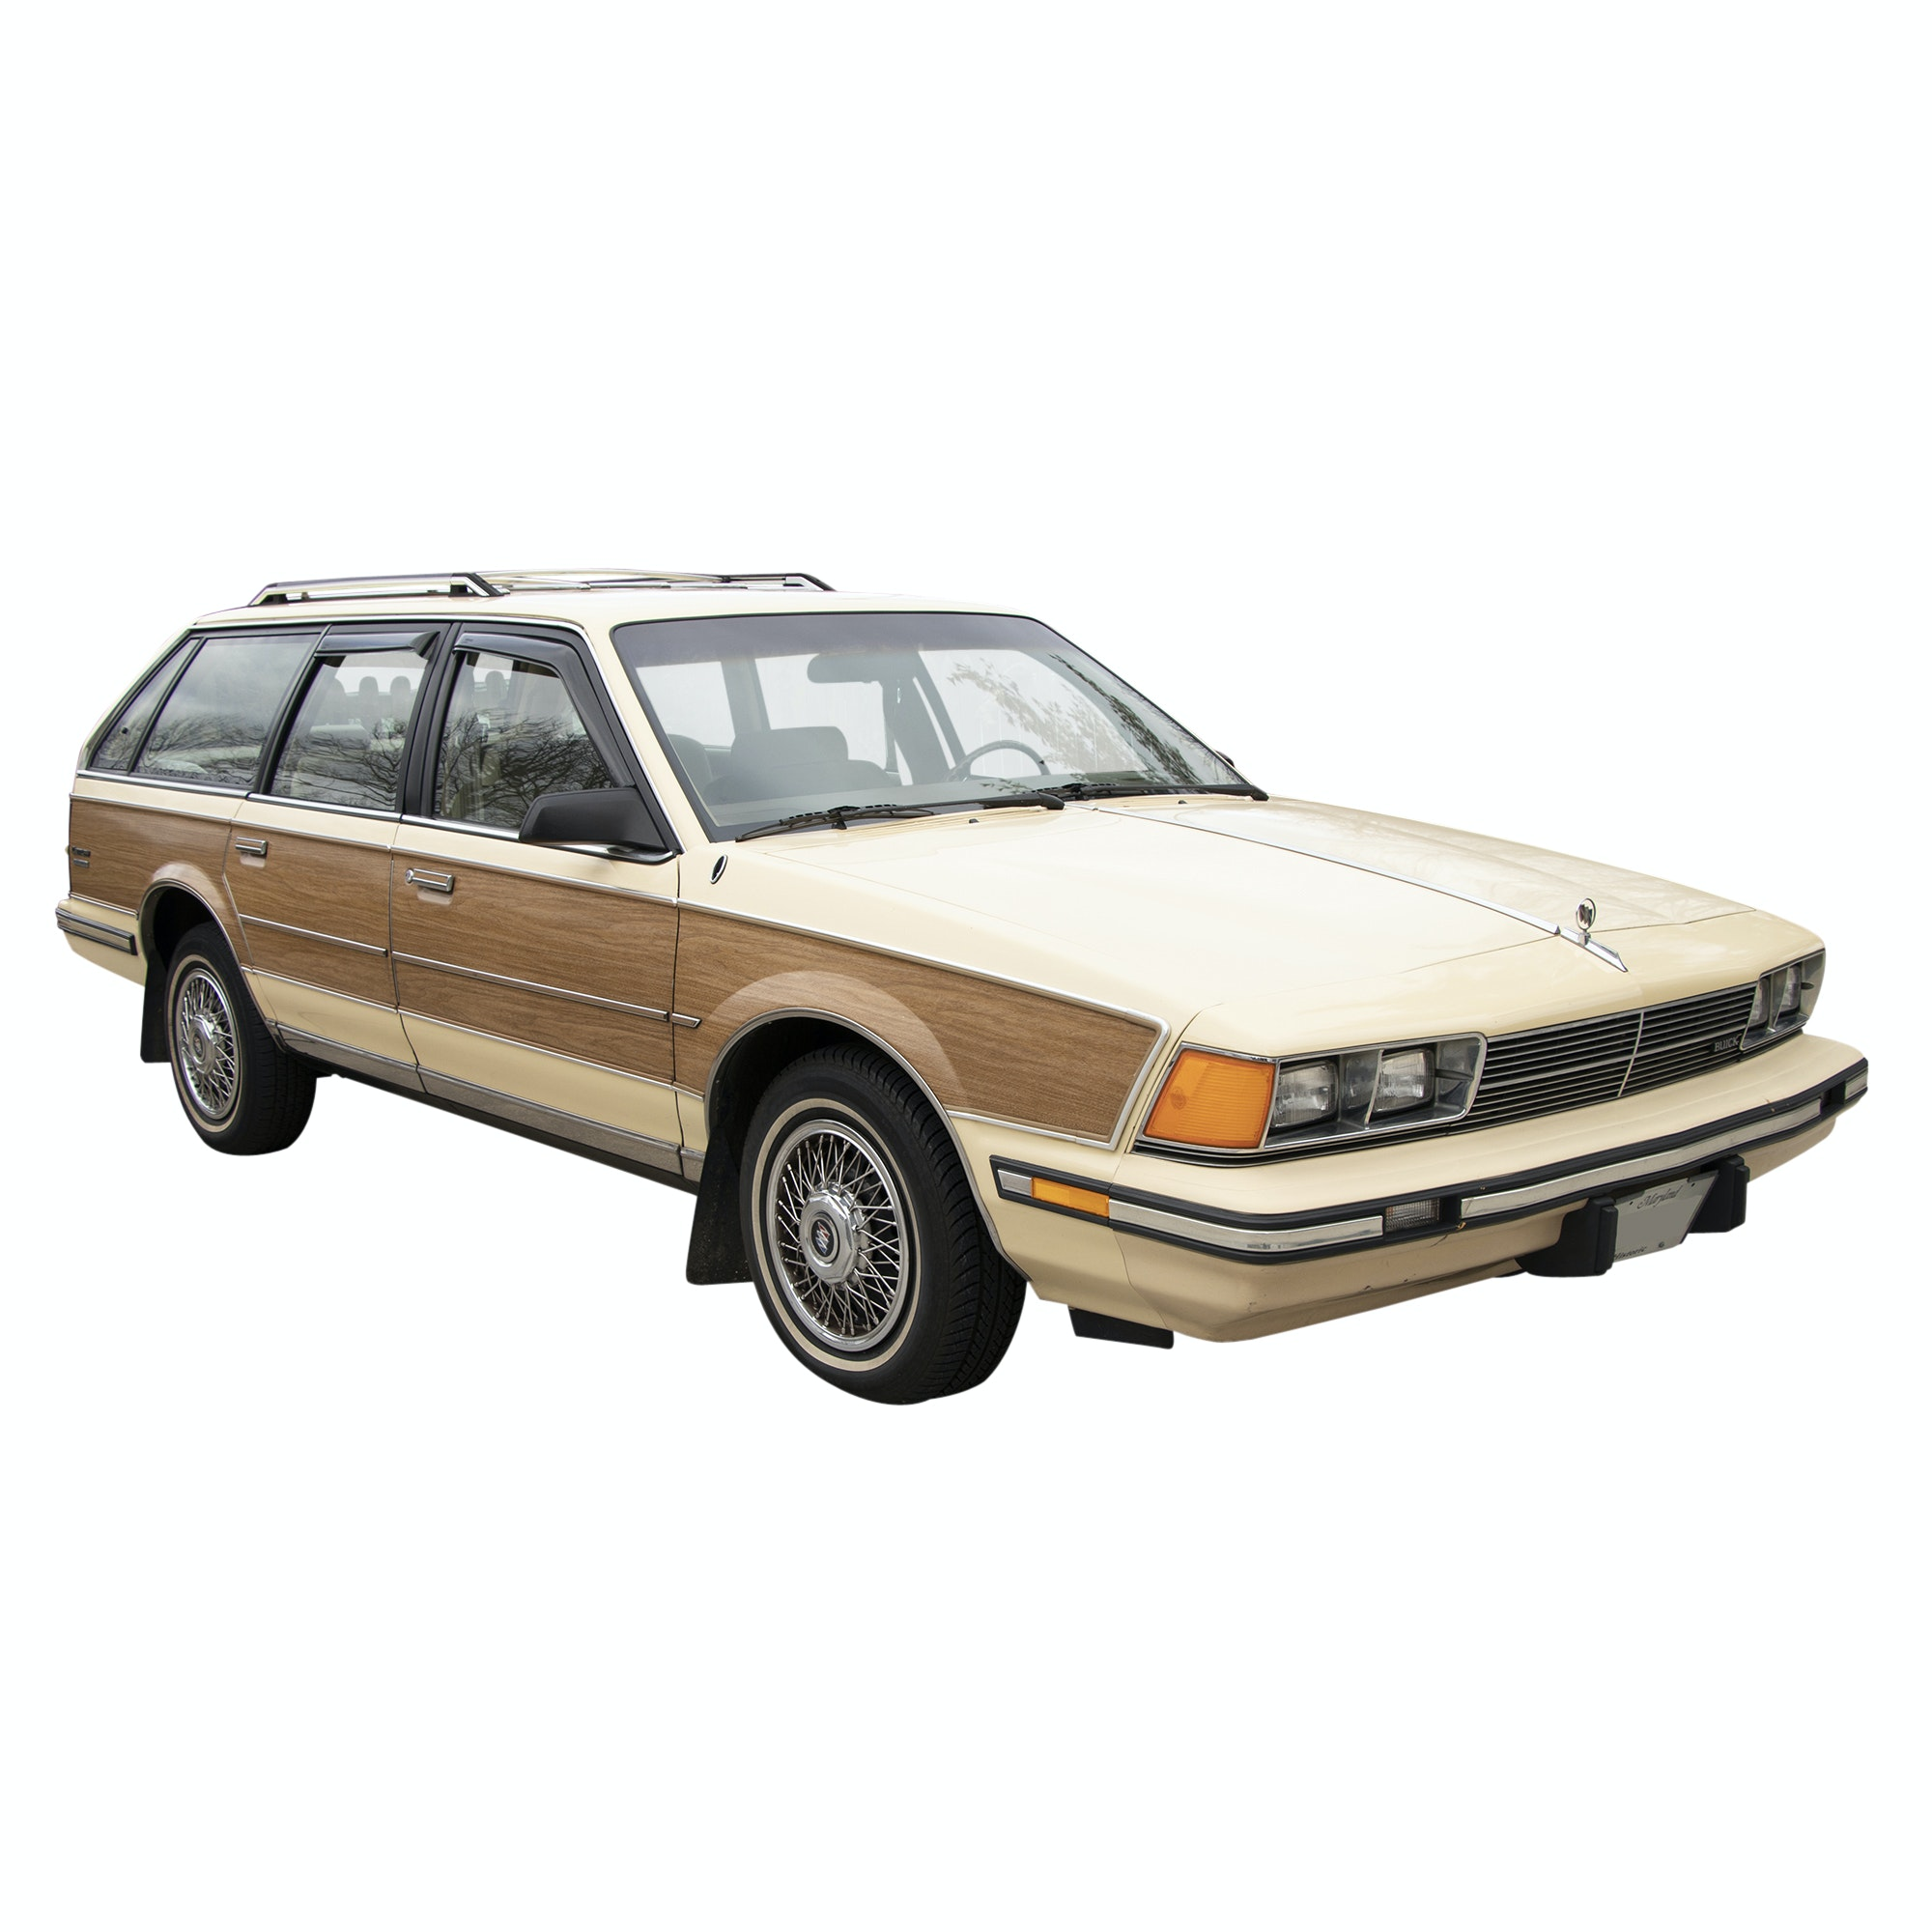 "1987 Buick Century ""Woody"" Estate Wagon"